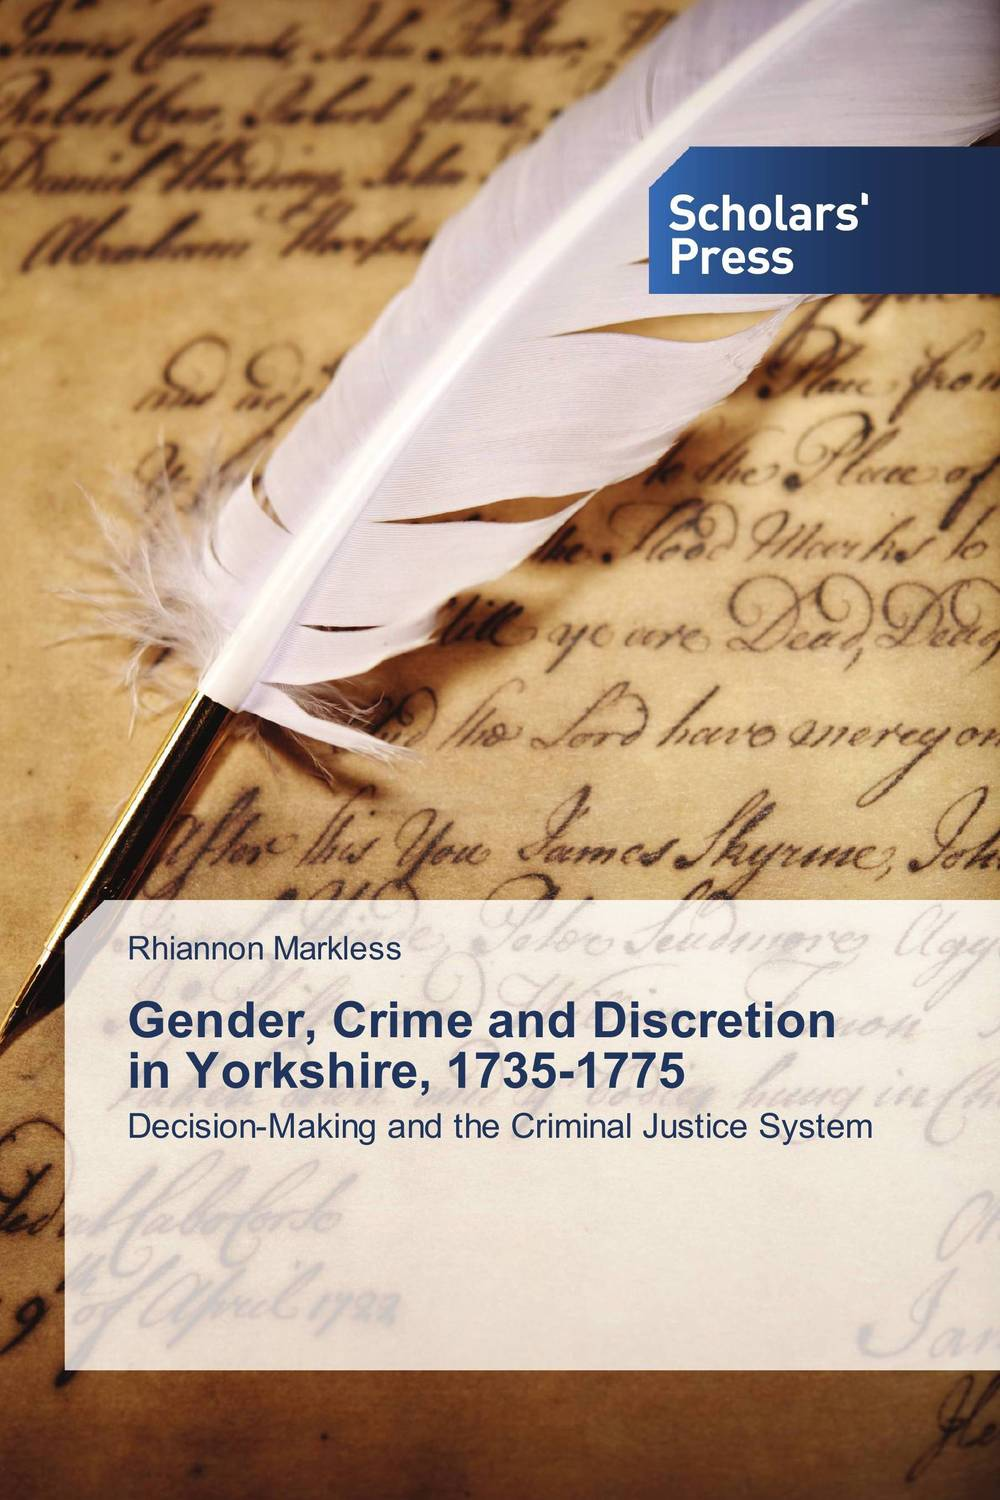 Gender, Crime and Discretion in Yorkshire, 1735-1775